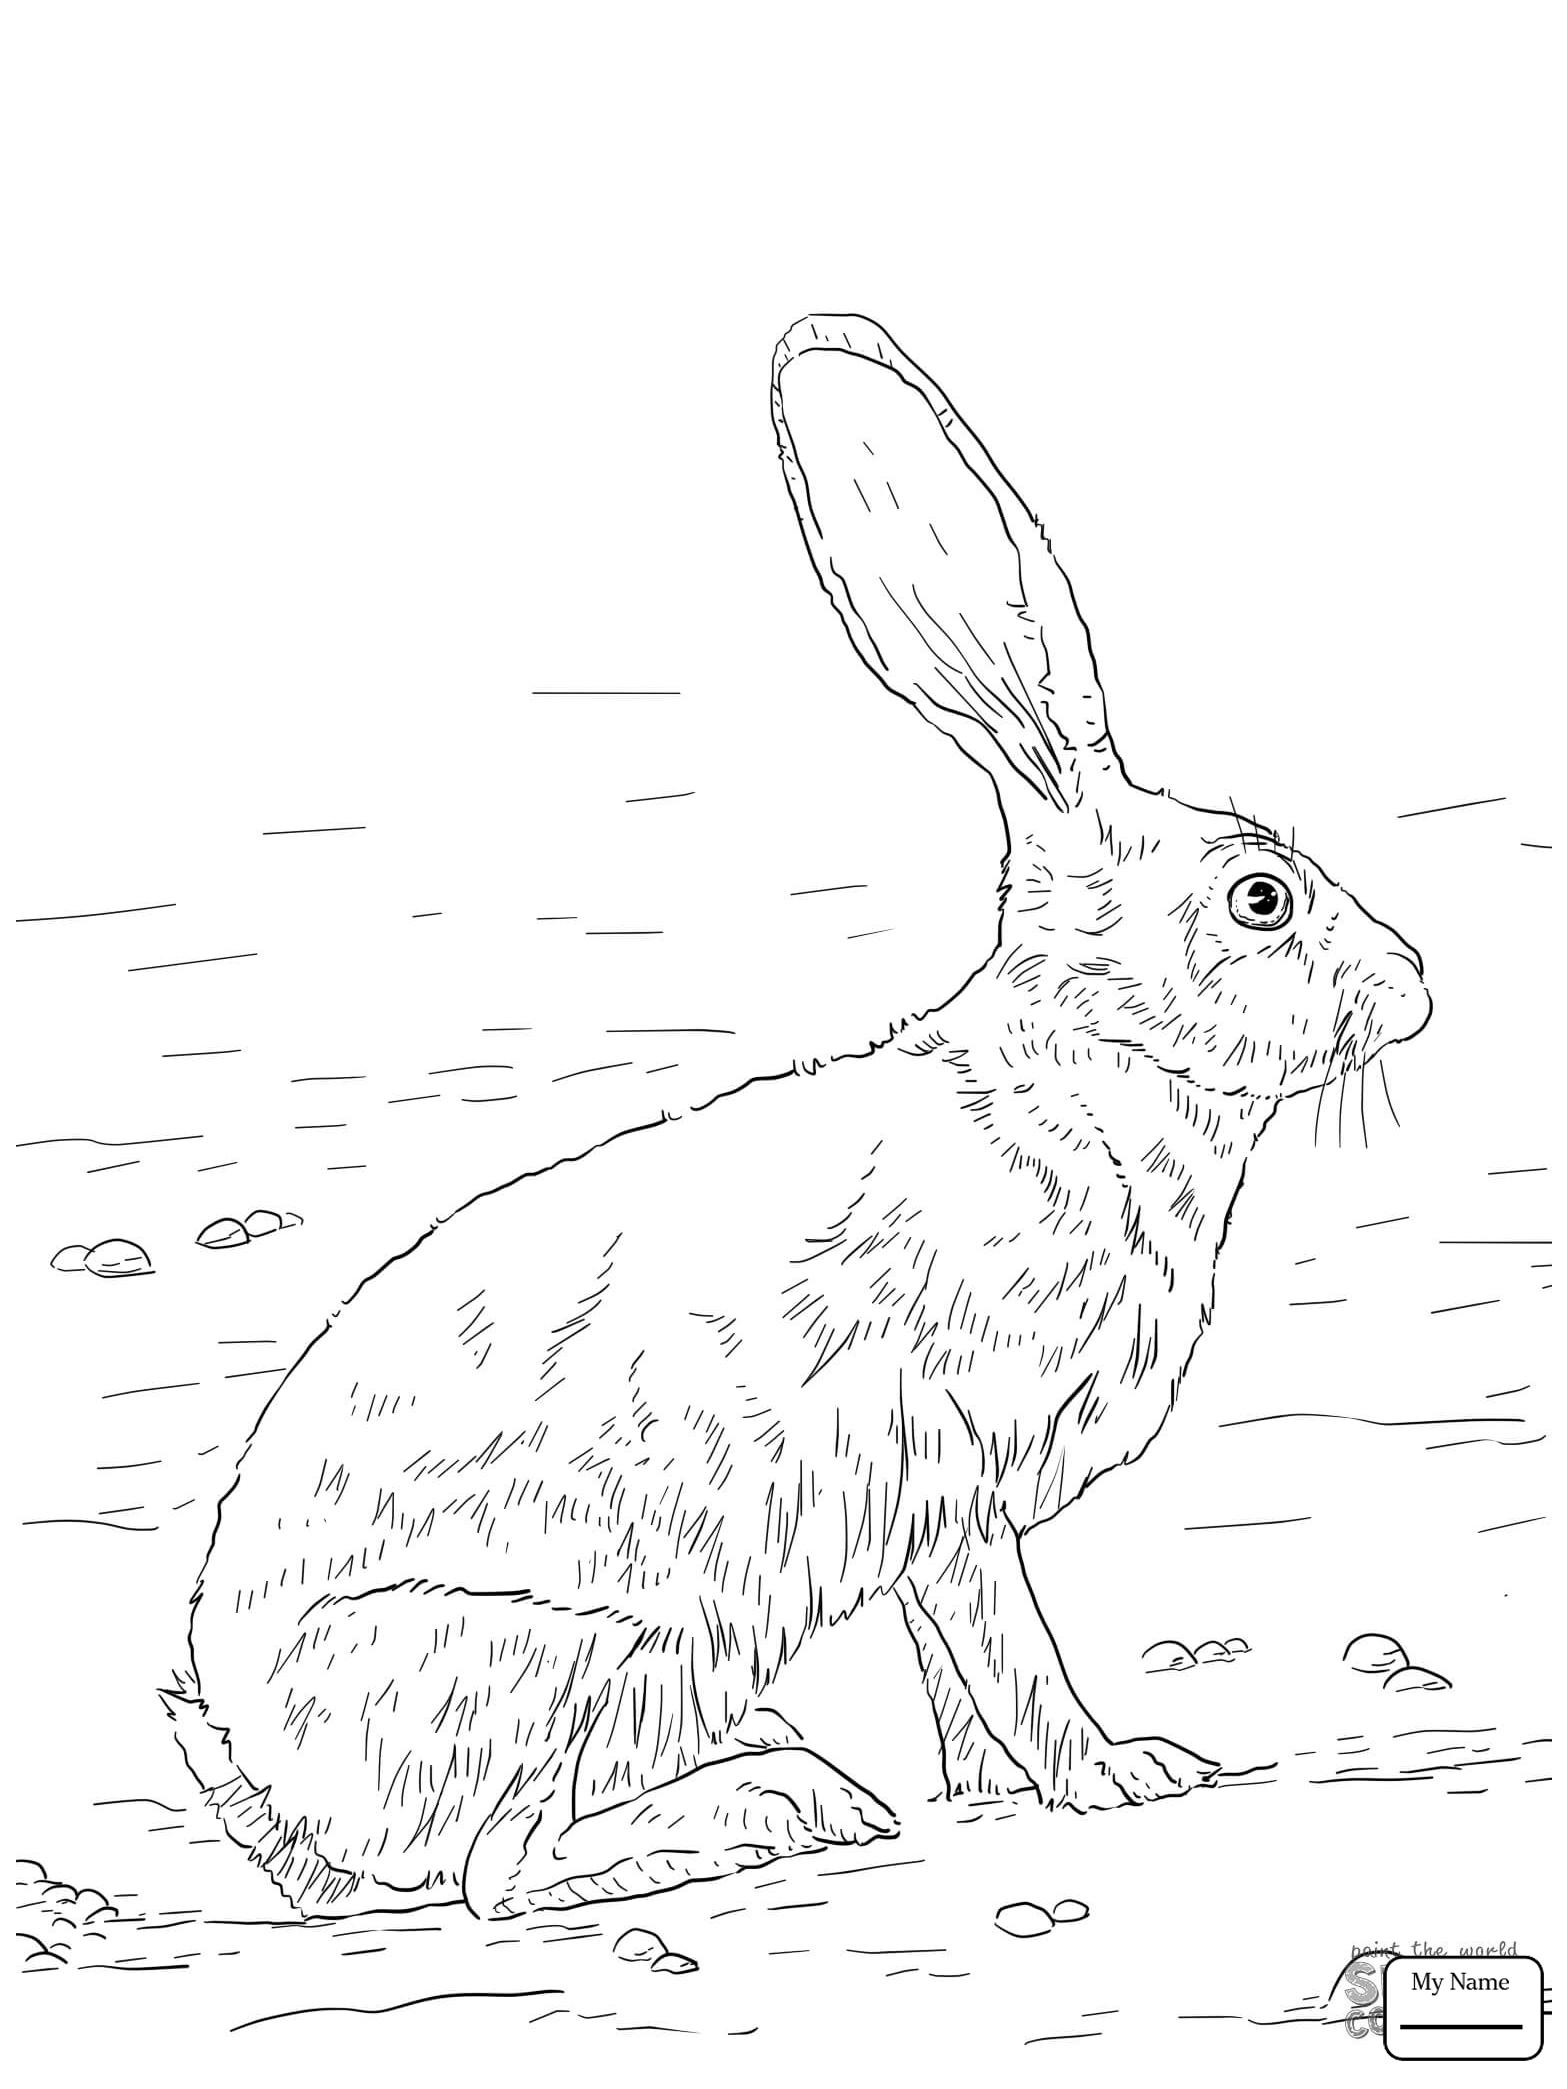 Jackrabbit Drawing at GetDrawings